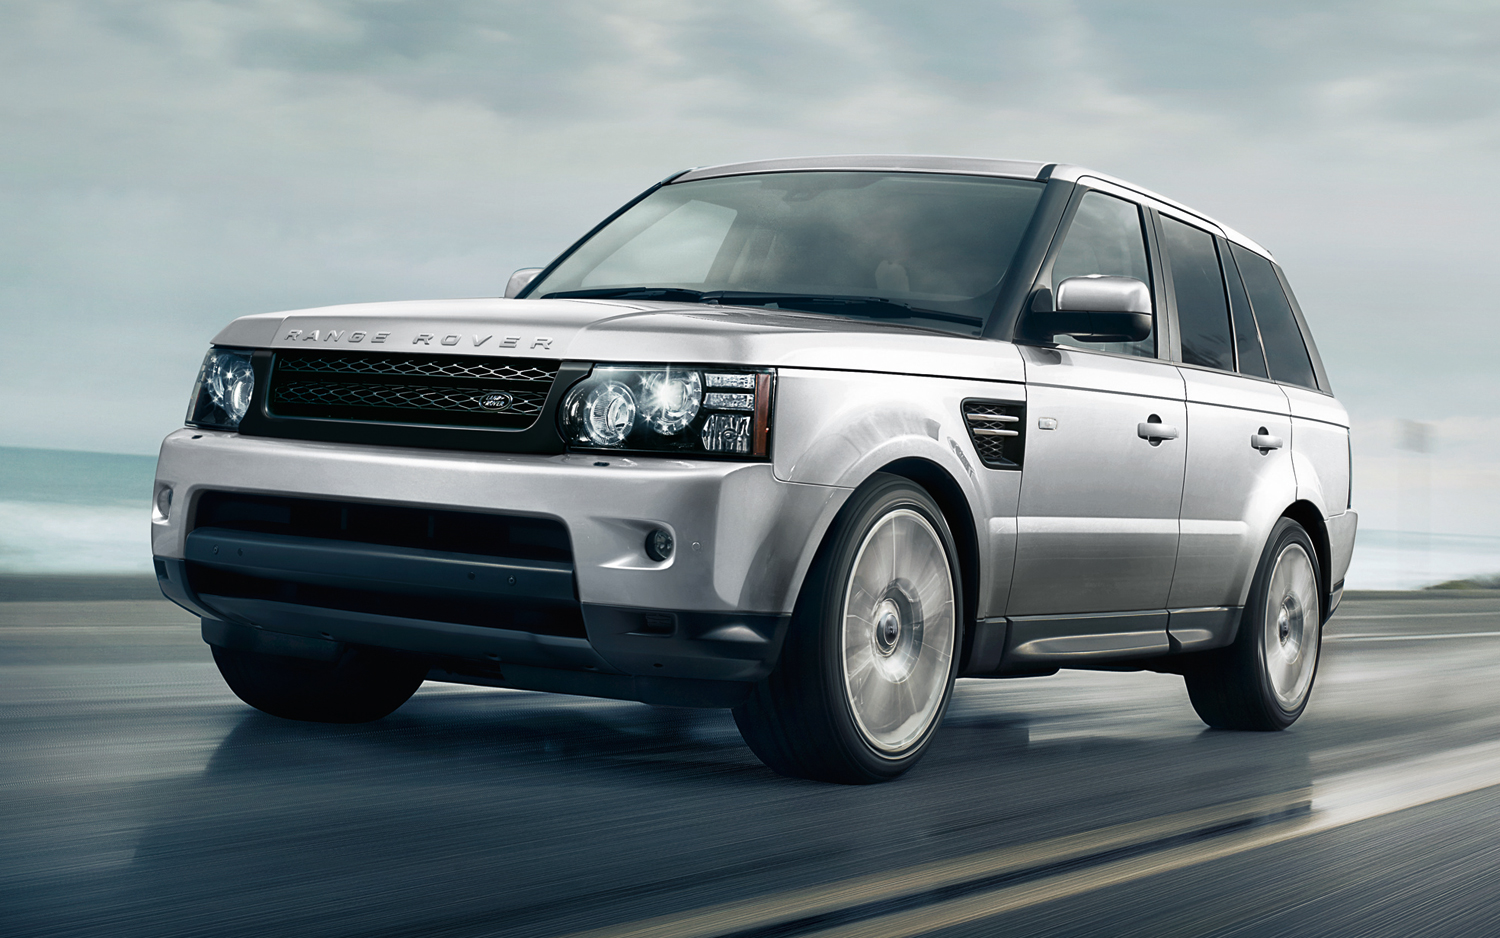 Facelift Cars - 2013 Range Rover Sport HSE - Indus Silver